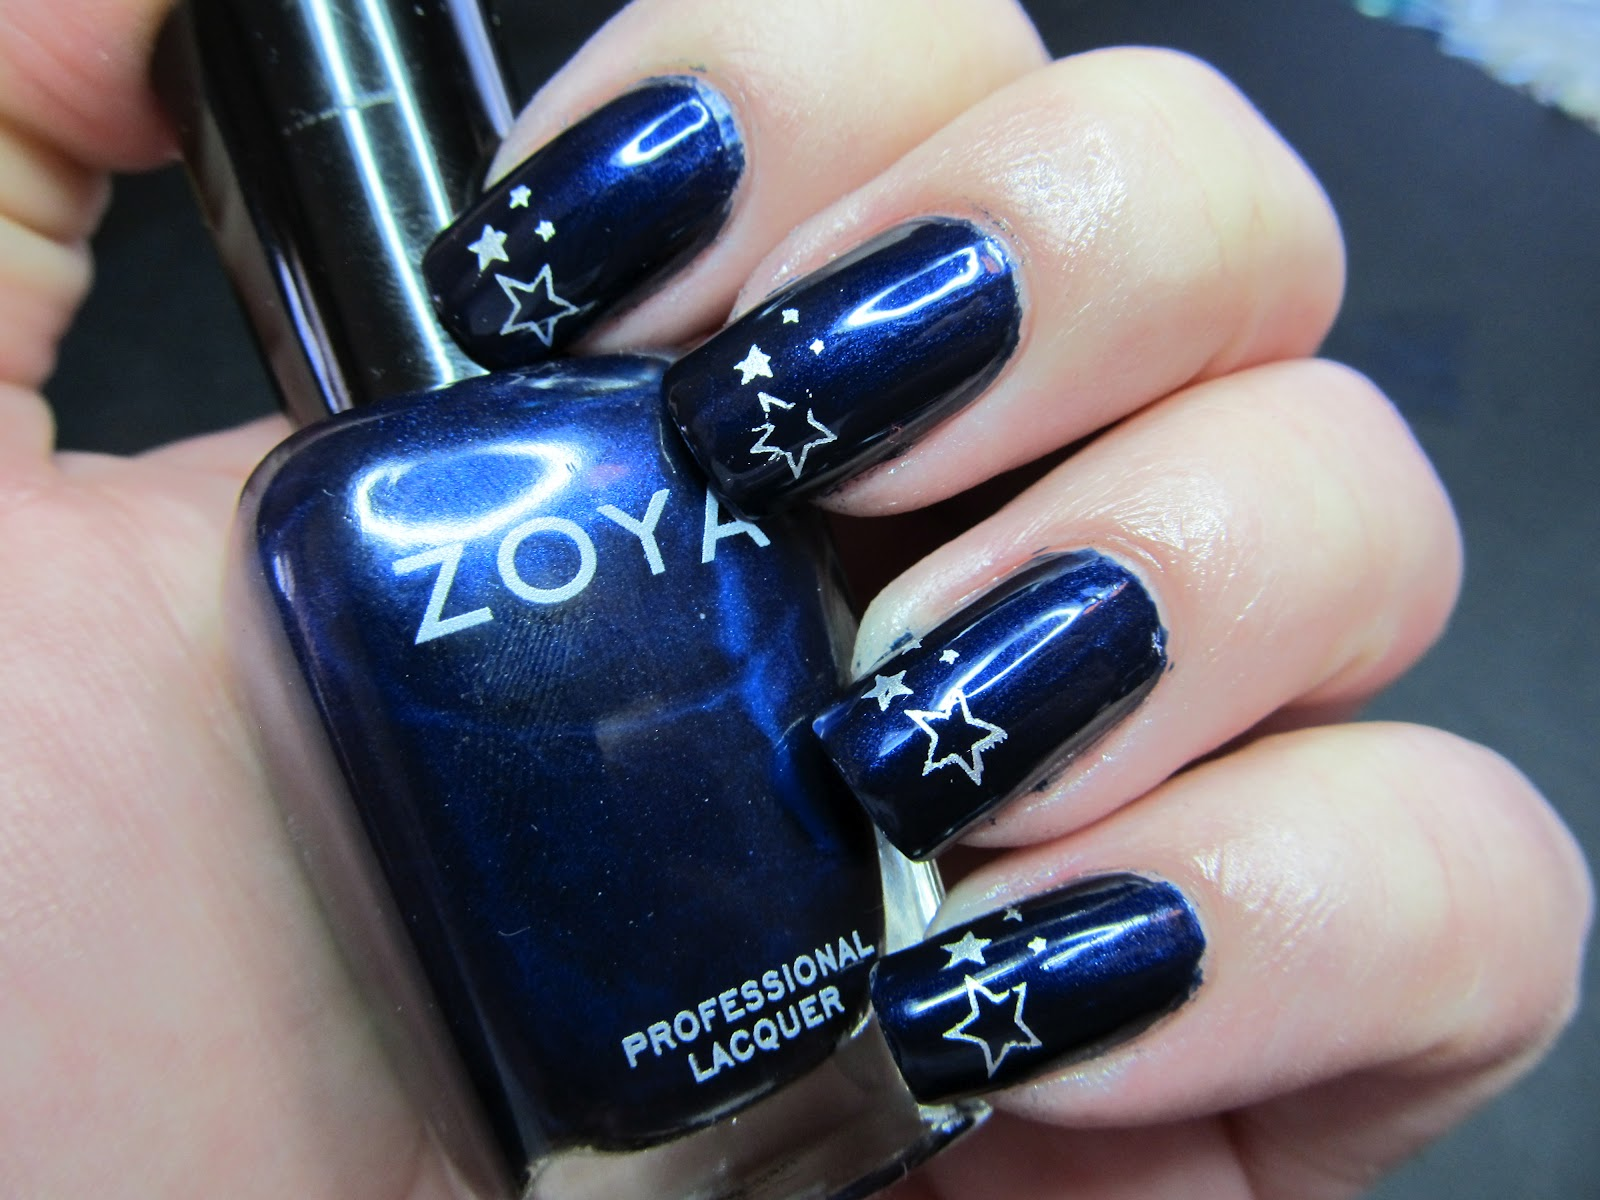 Zoya Ibiza - my kind of blue - Set in Lacquer